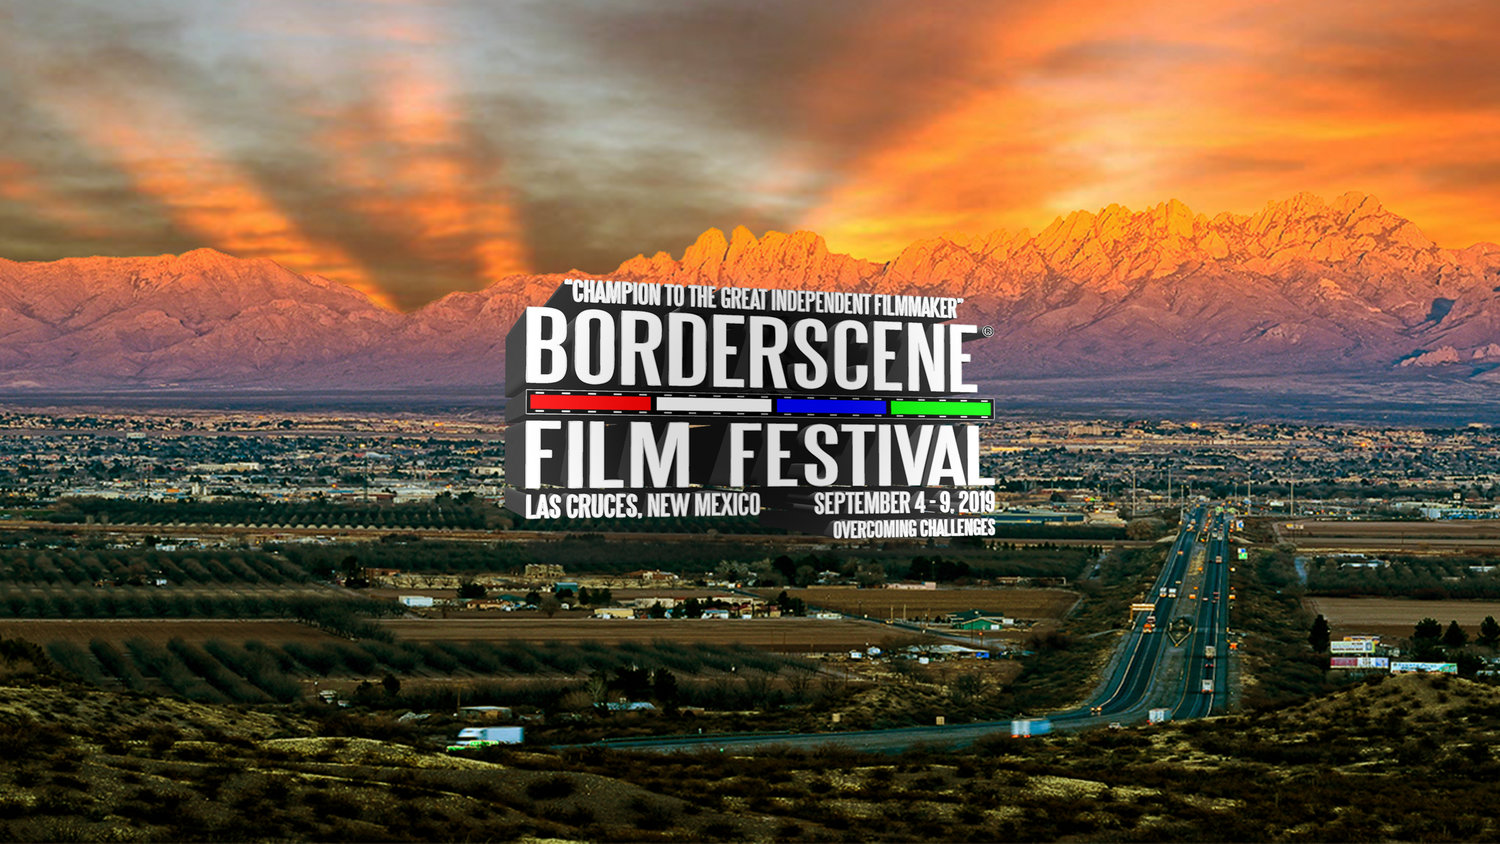 The Borderlands Film Festival is now the Borderscene Film Festival.